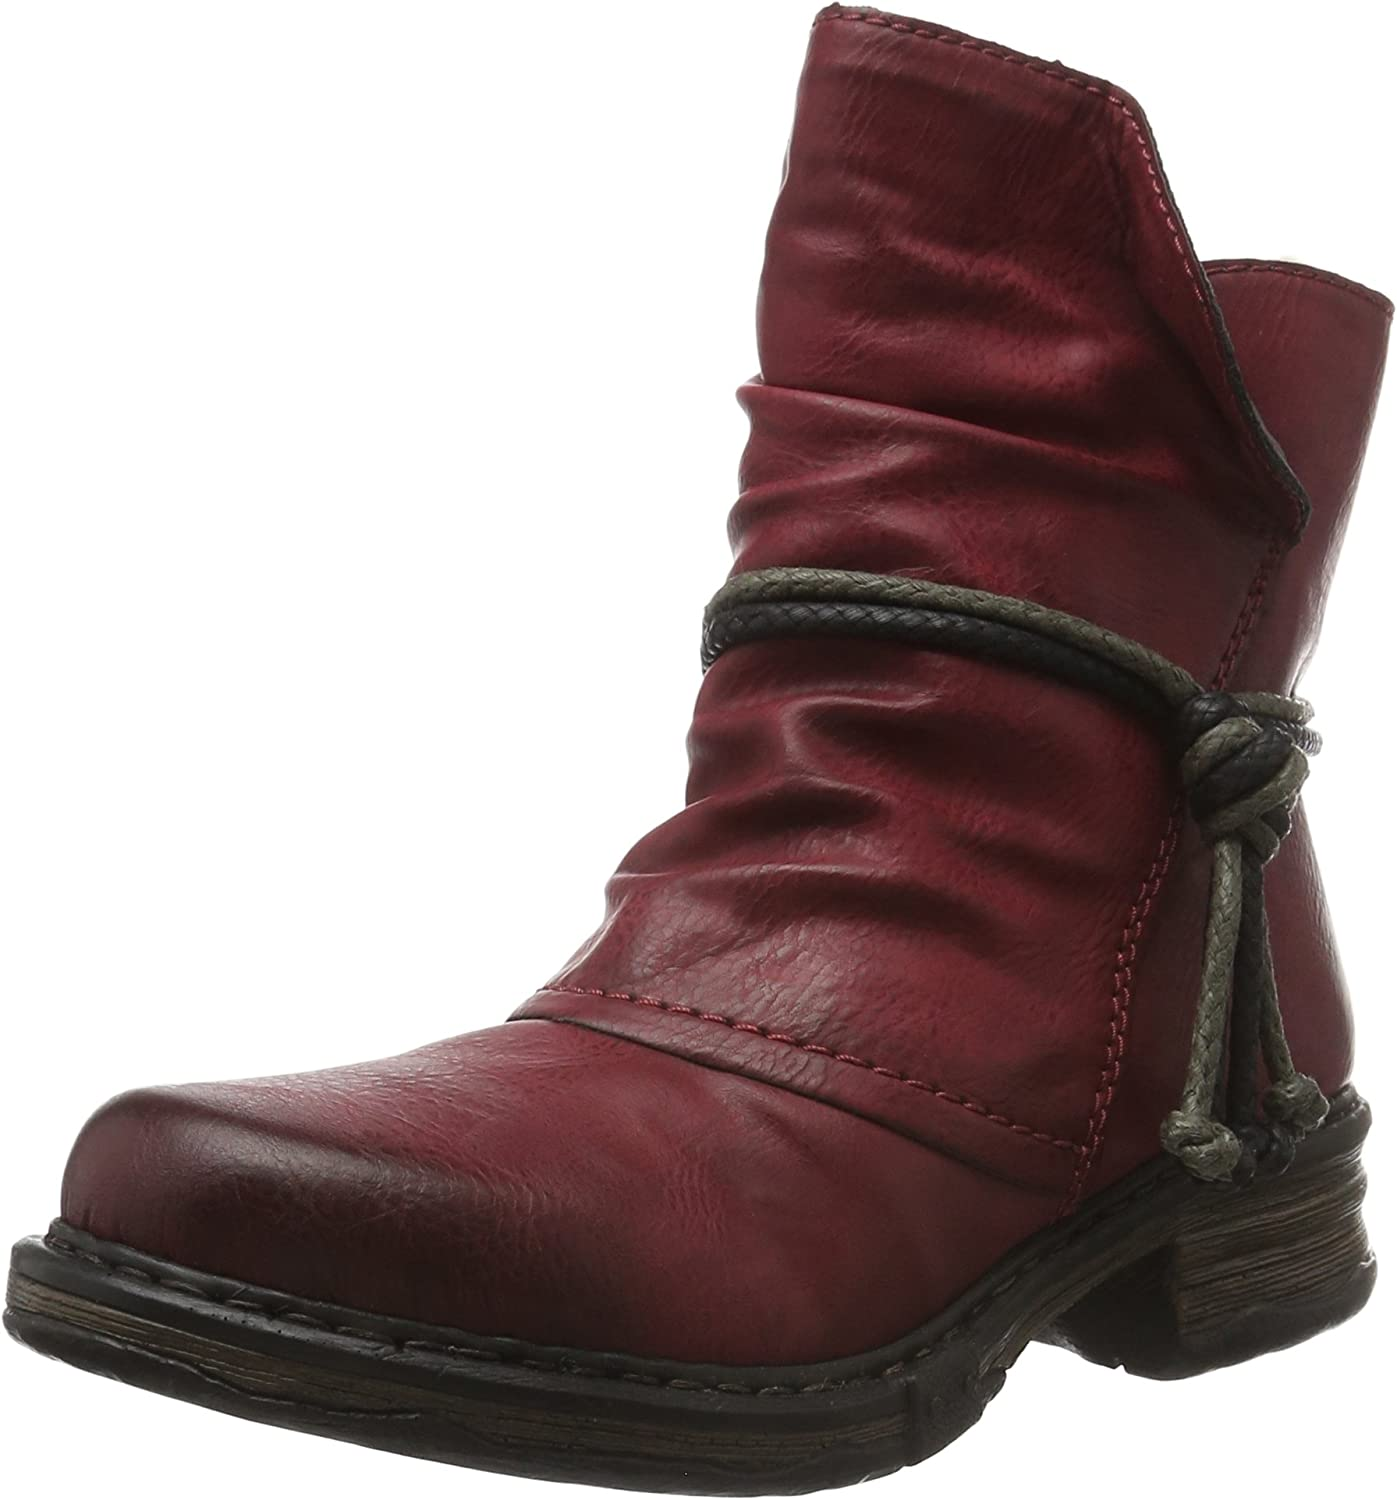 Rieker Max 56% Some reservation OFF Women's Boots Ankle